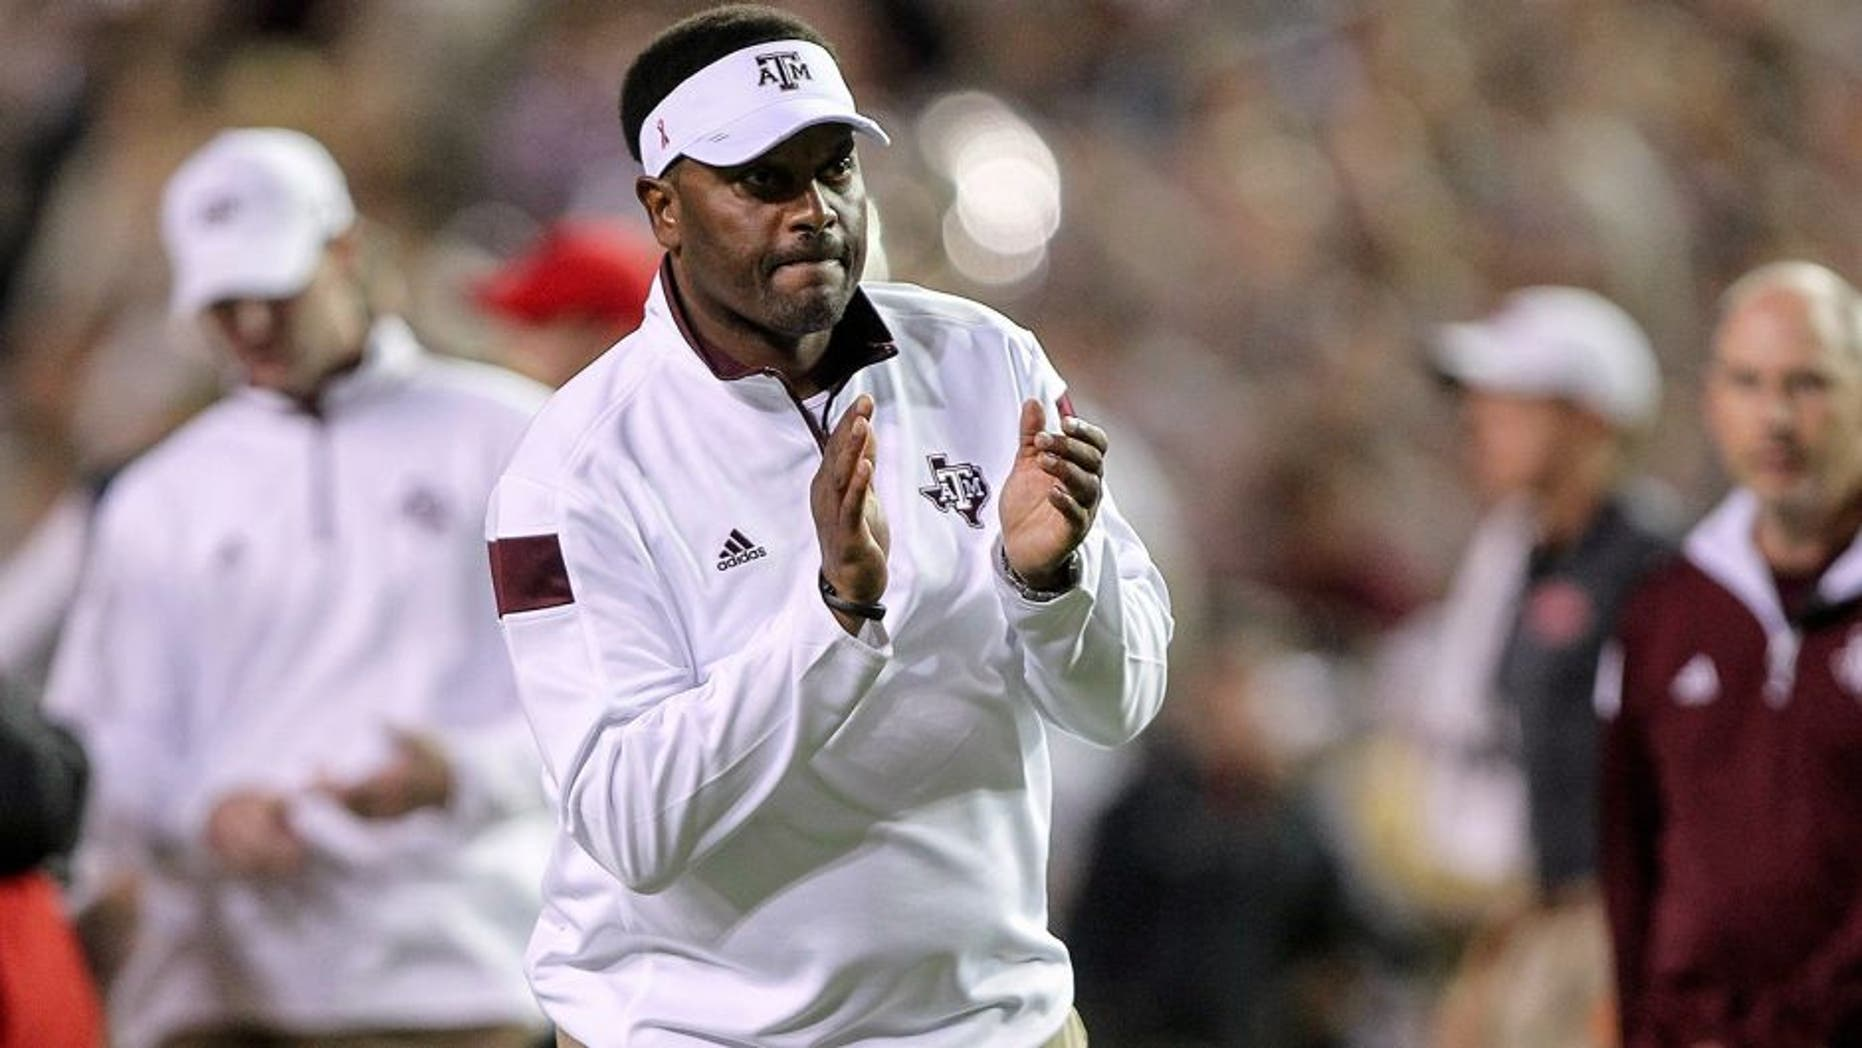 Oct 11, 2014; College Station, TX, USA; Texas A&M Aggies head coach Kevin Sumlin before a game against the Mississippi Rebels at Kyle Field. Mandatory Credit: Troy Taormina-USA TODAY Sports